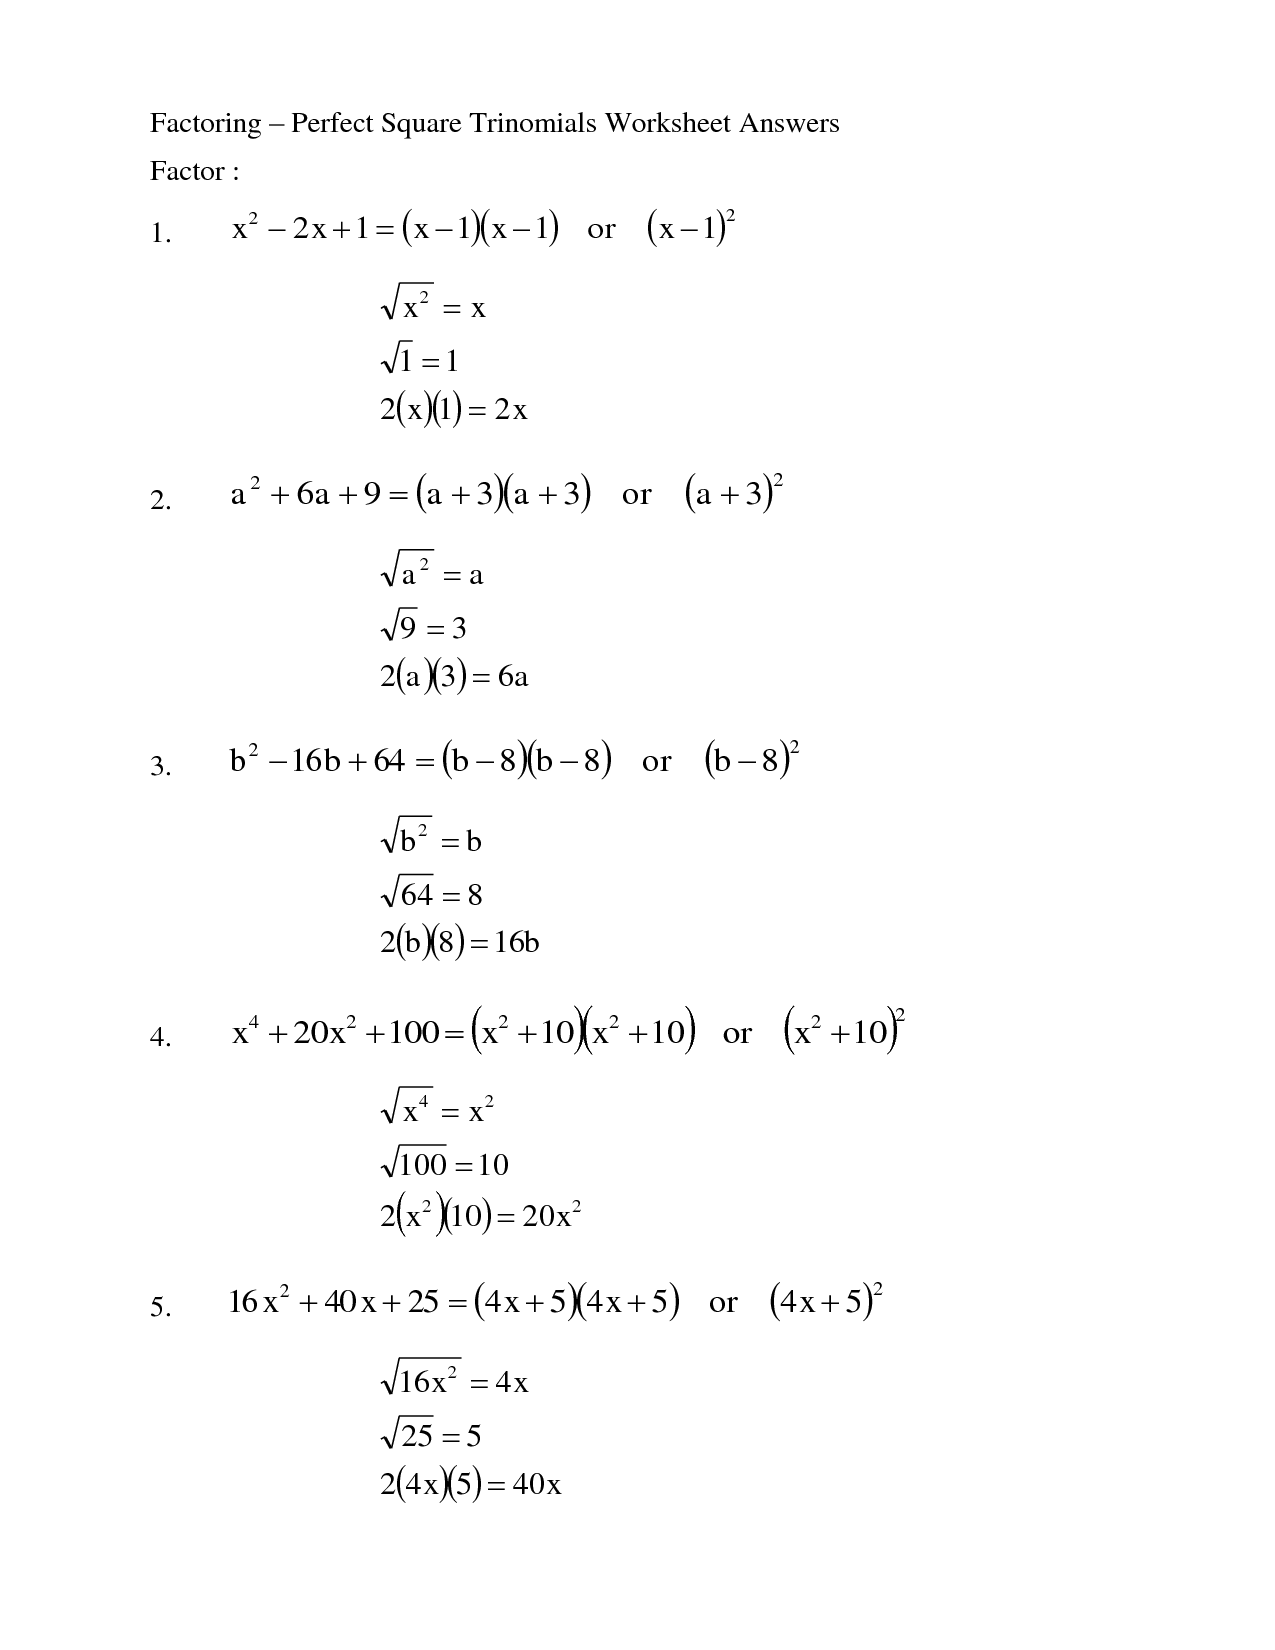 Factoring Trinomials Worksheet Answers Kuta  factoring quadratic trinomials worksheet kuta